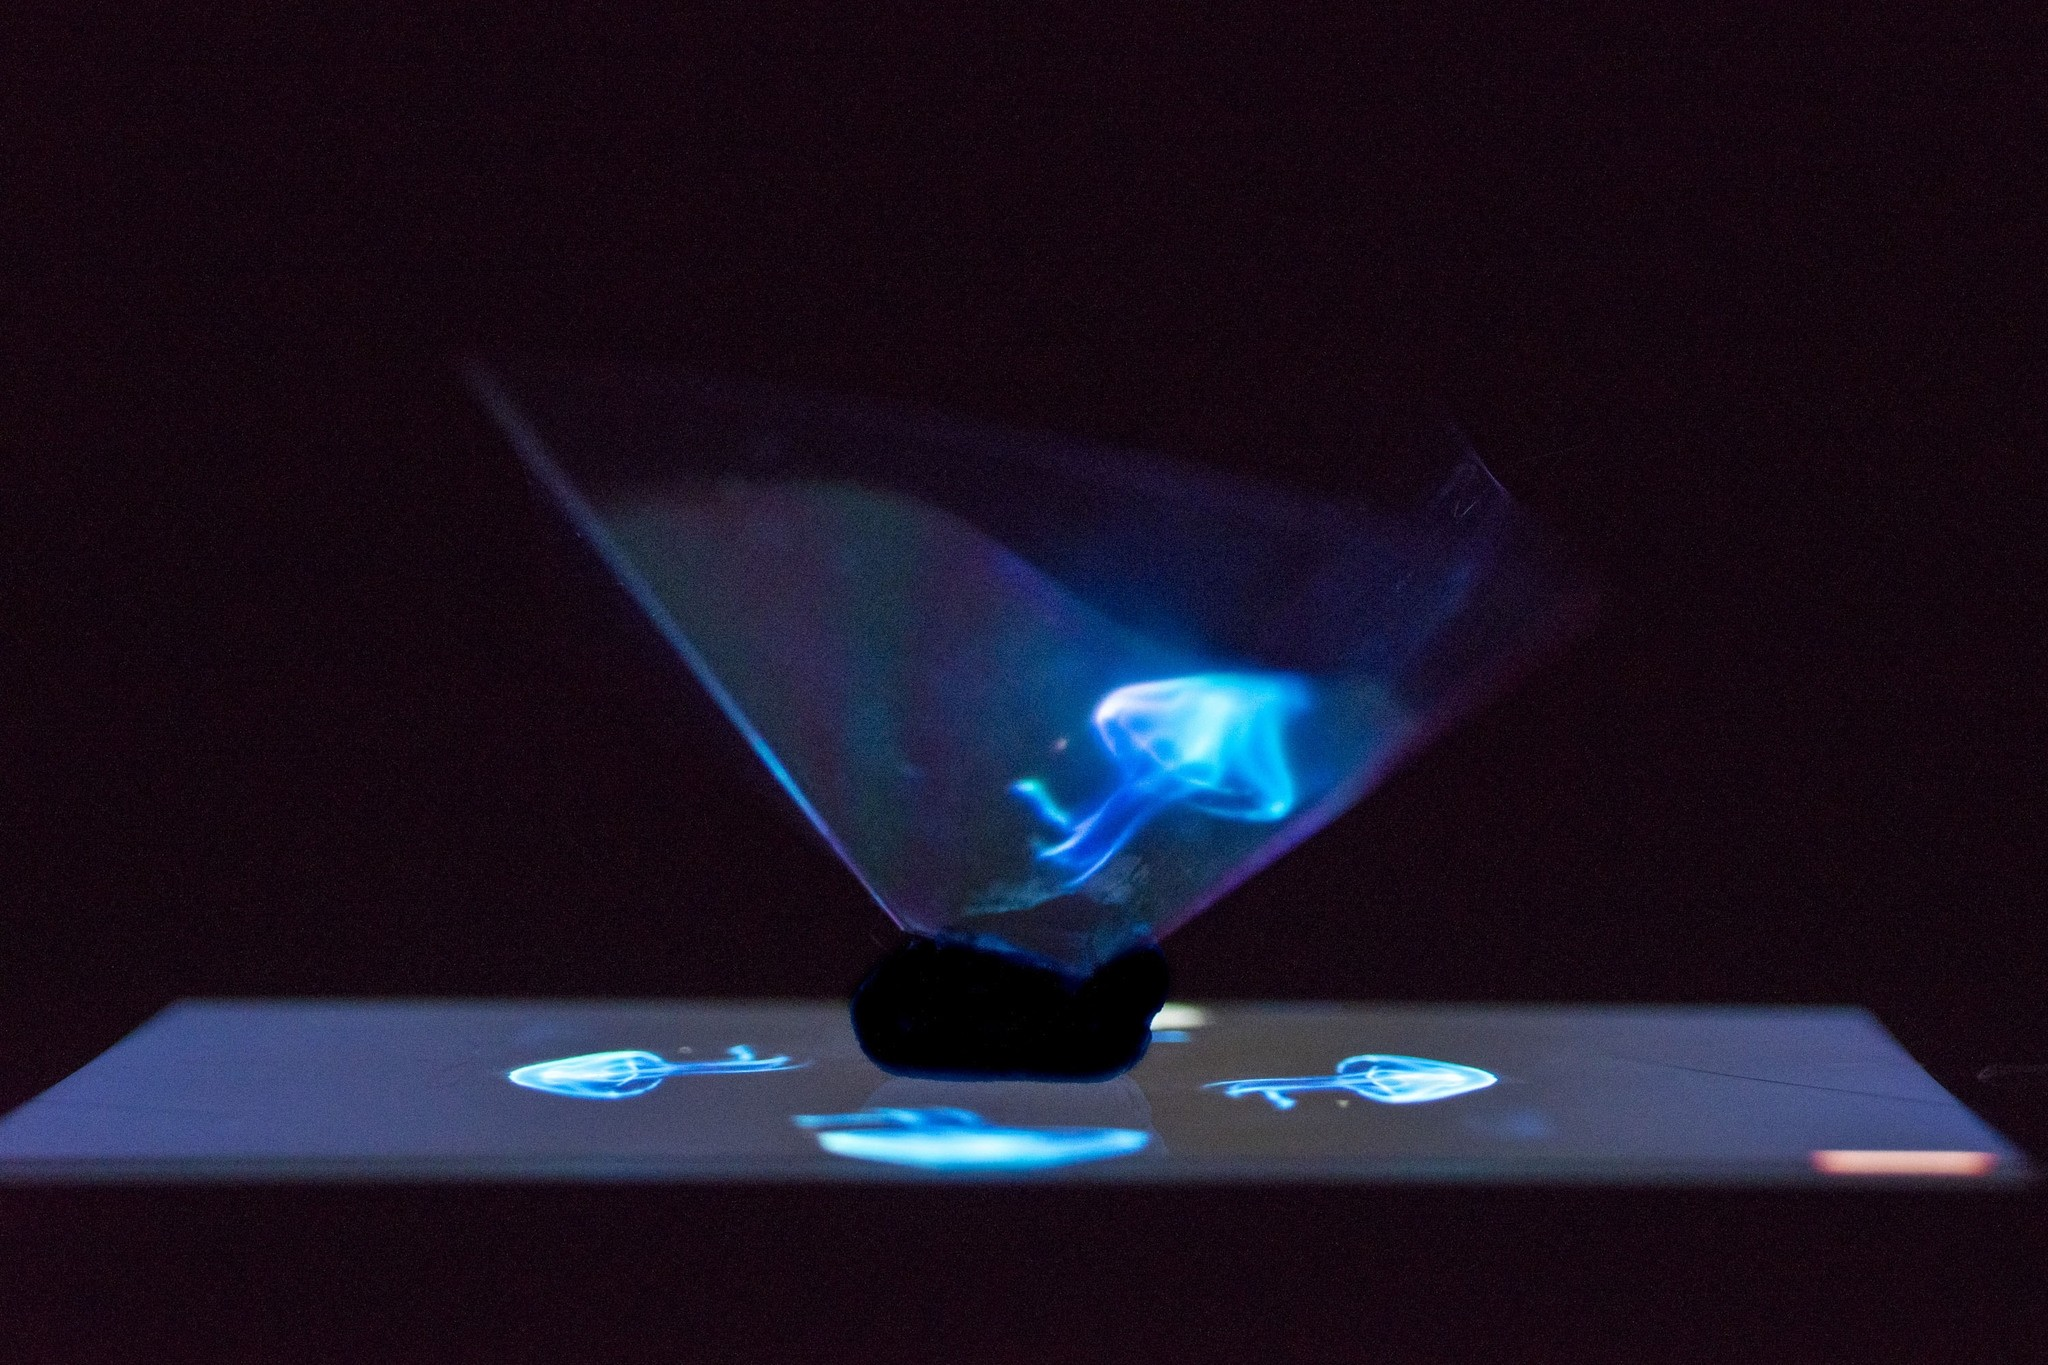 Using plastic pieces and scissors, the participants of the u201cMini Hologramu201d workshop design their own hologram pyramids, put them on their mobile screens and create 3D illusions via hologram videos.